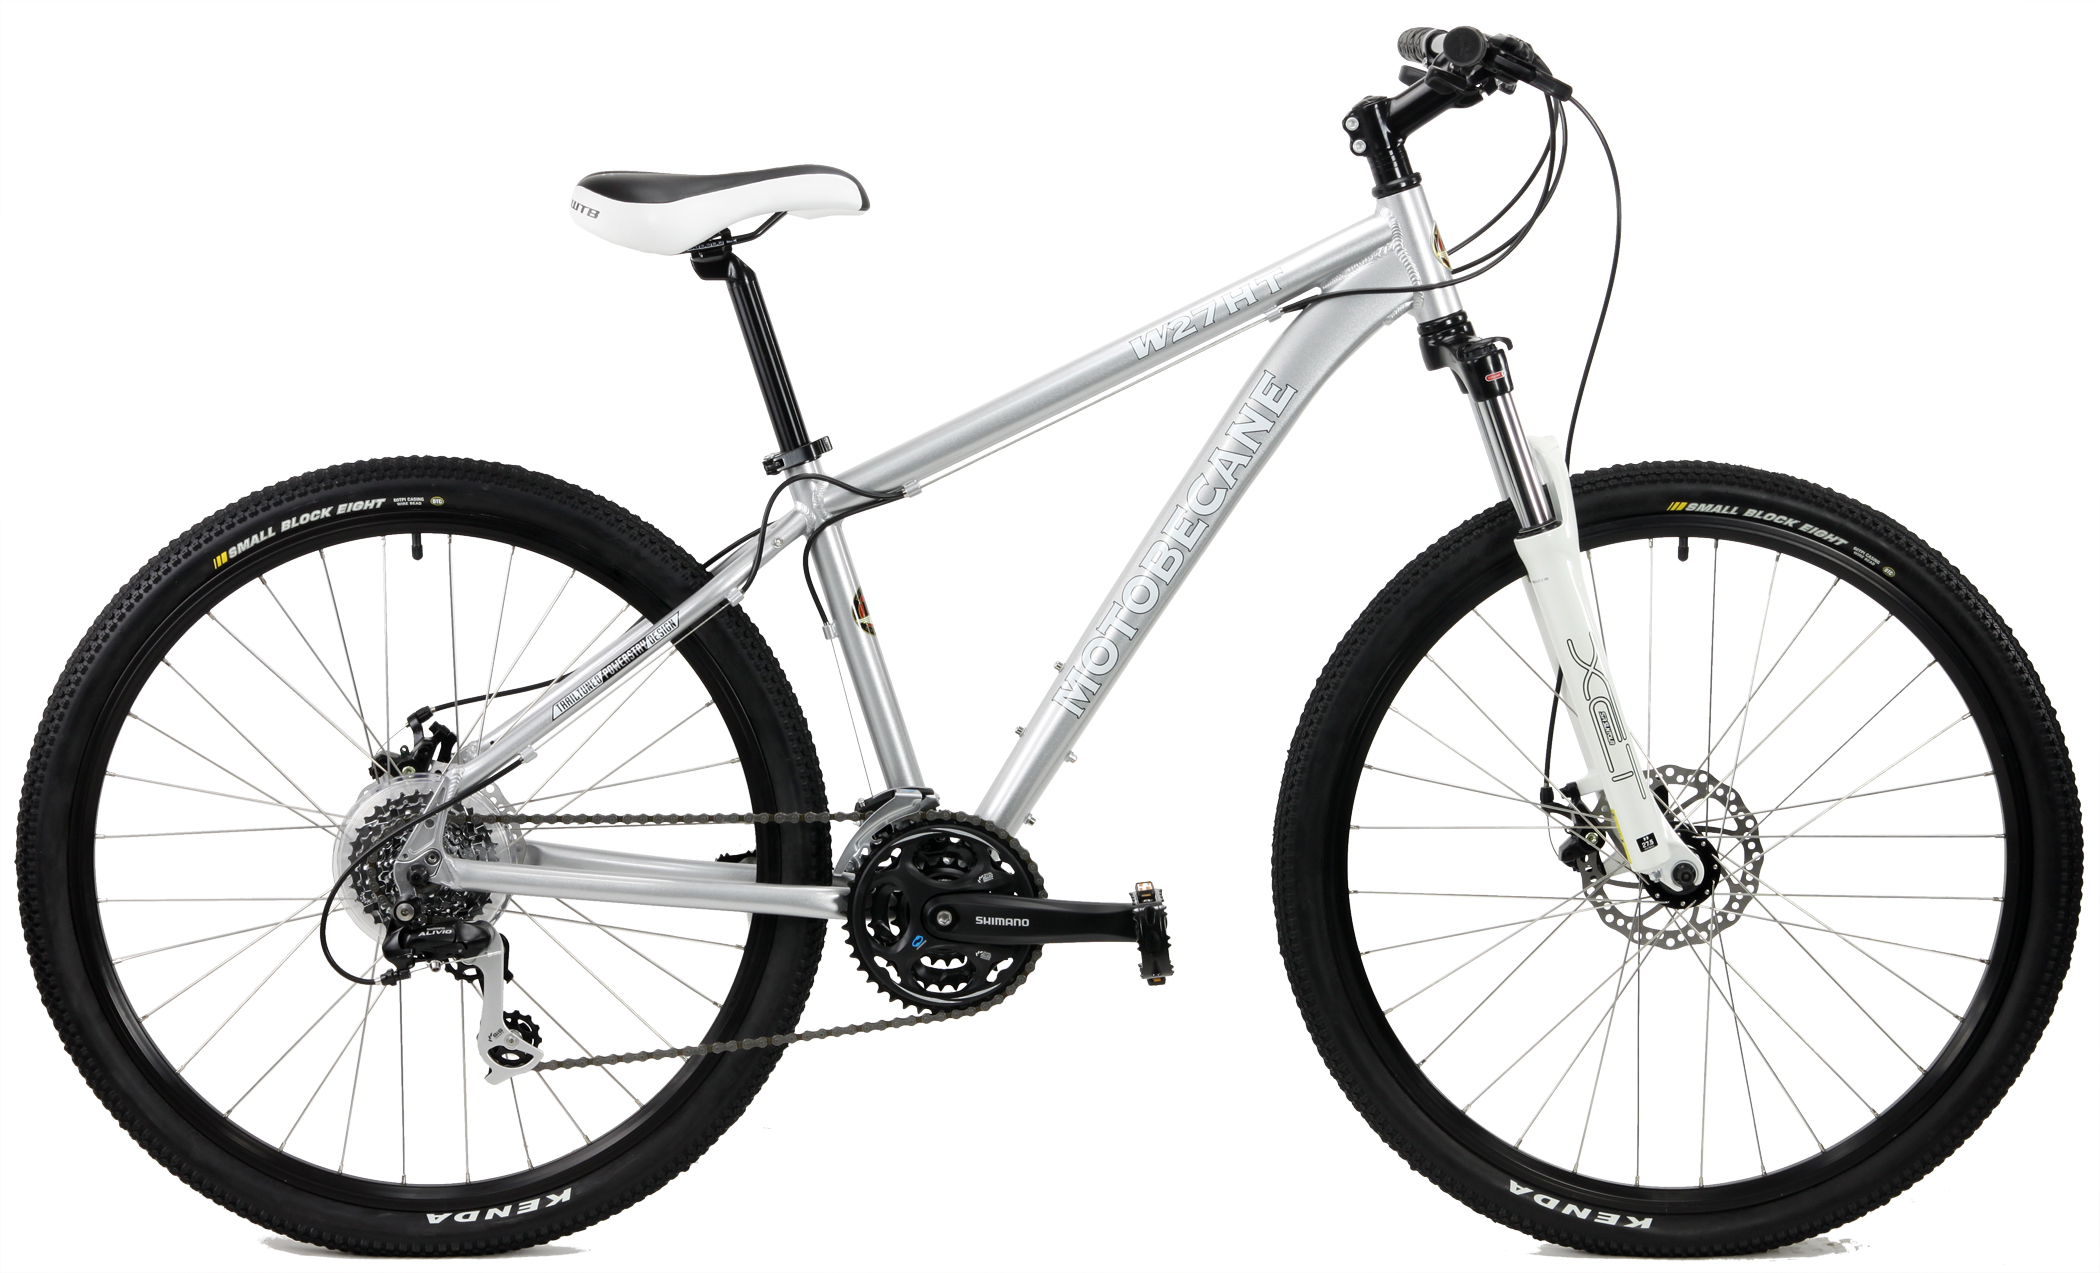 Save Up To 60% Off Women's Mountain Bikes